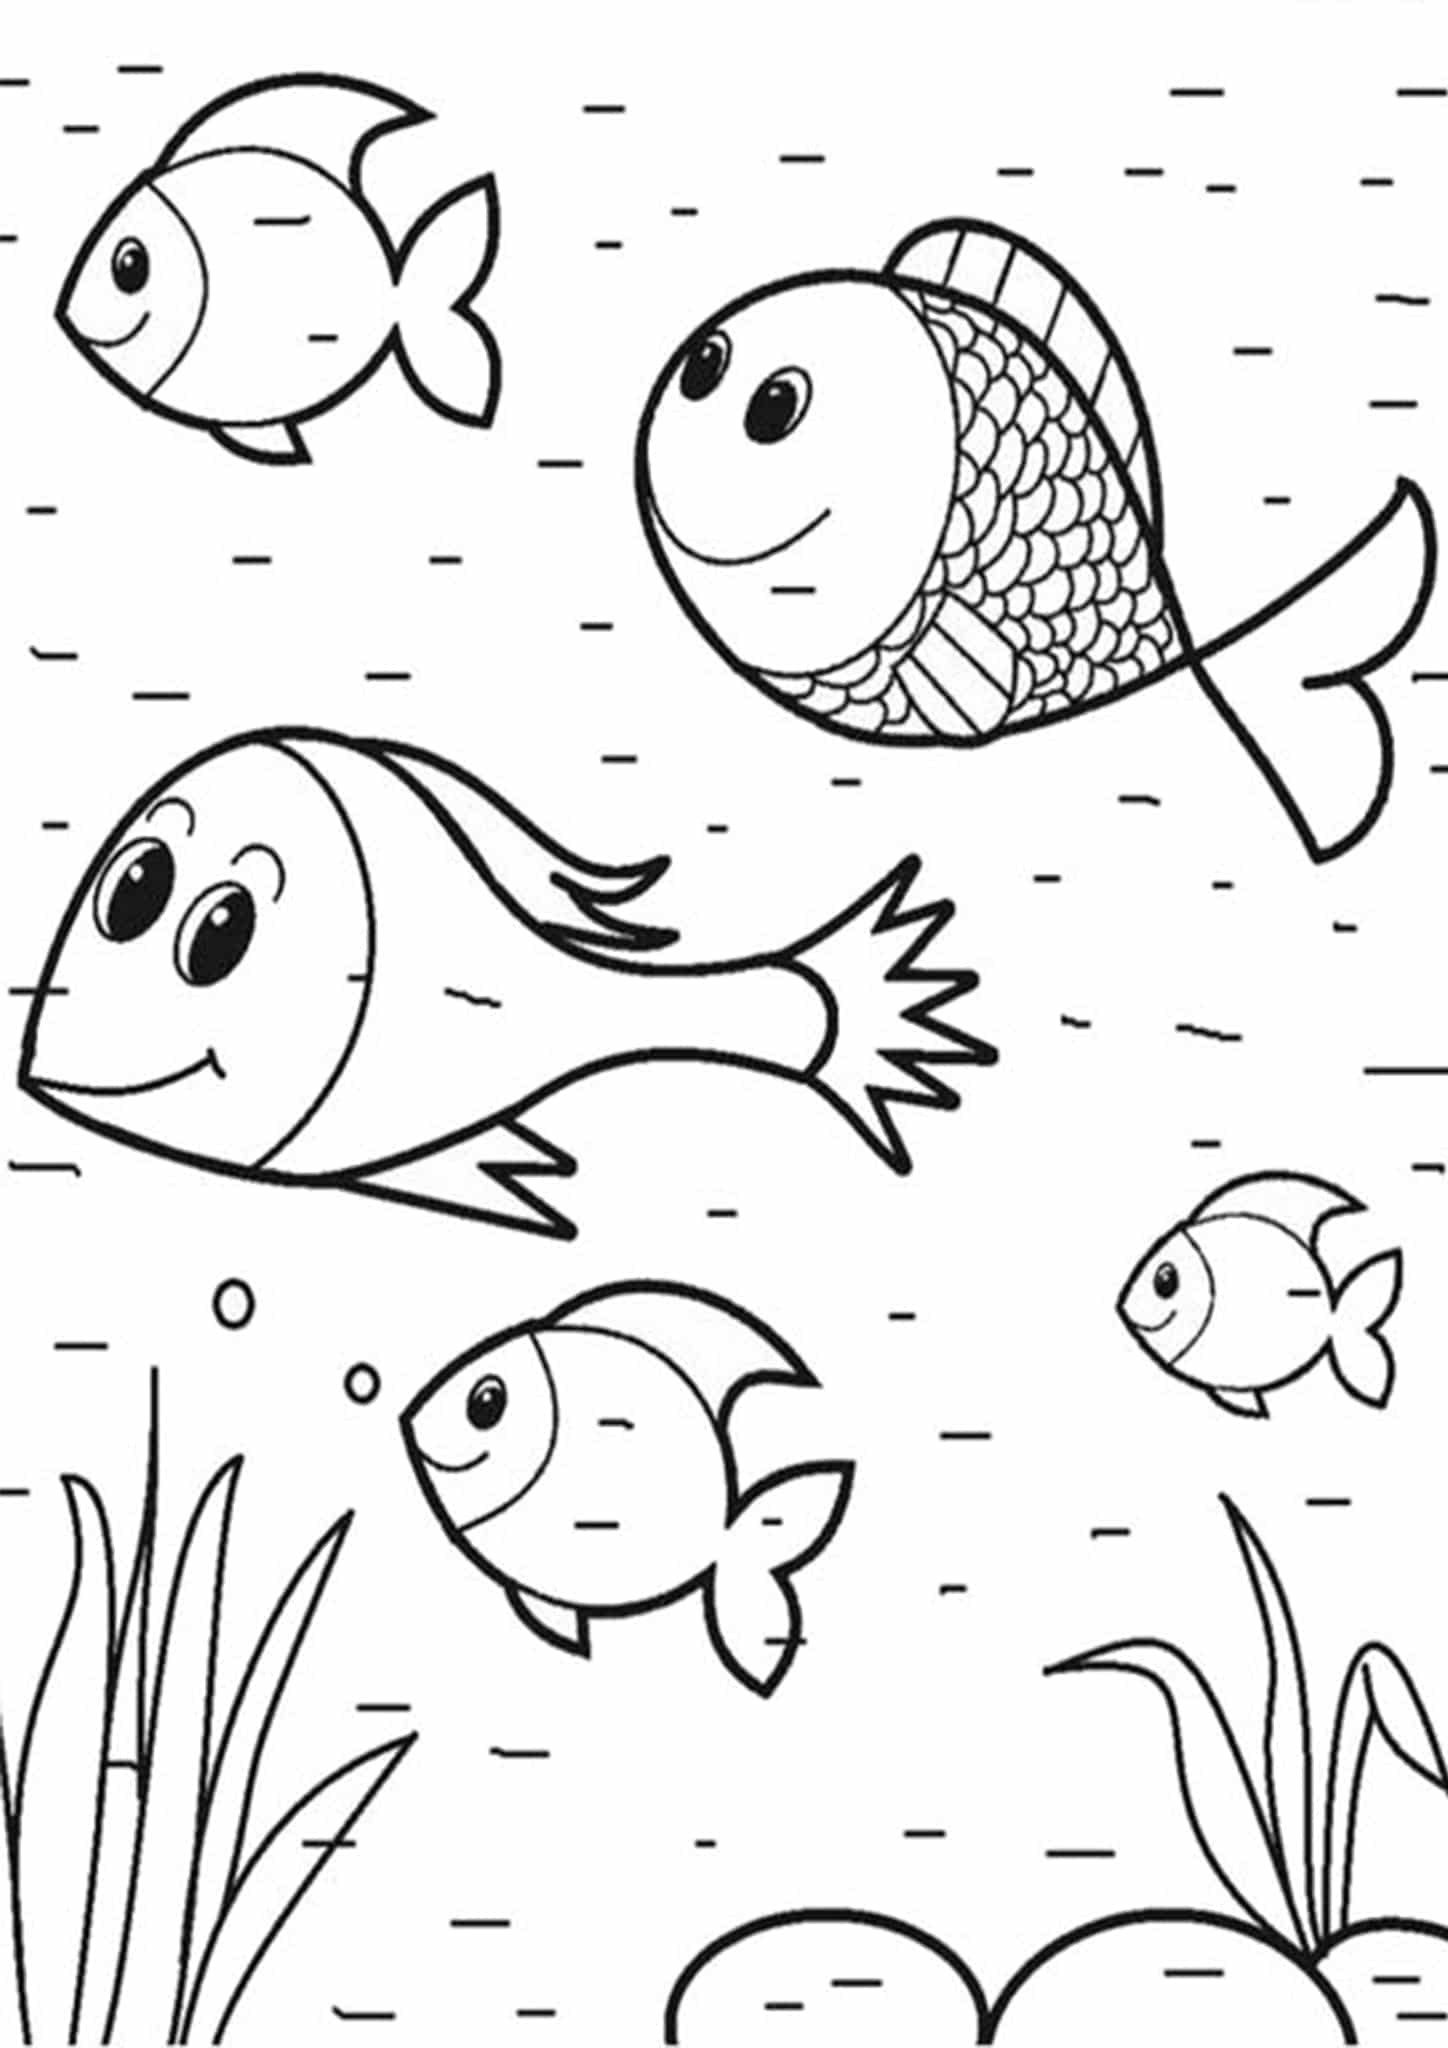 free easy coloring pages easy coloring pages to download and print for free free easy pages coloring